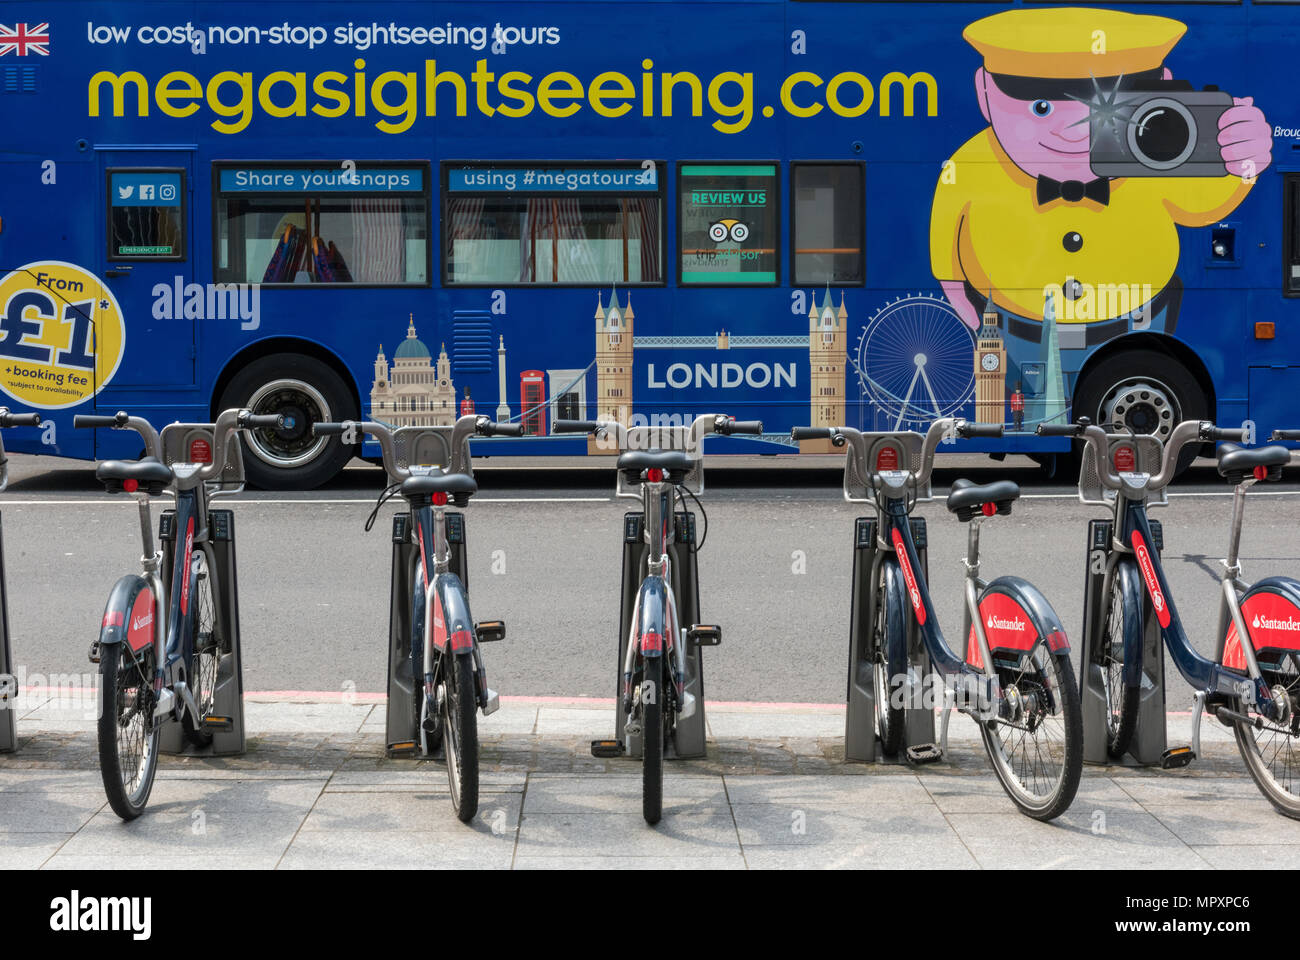 a sightseeing bus in the centre of london with borris bikes provided by TFL or transport for London in the foreground. Typically london tourism scene. - Stock Image